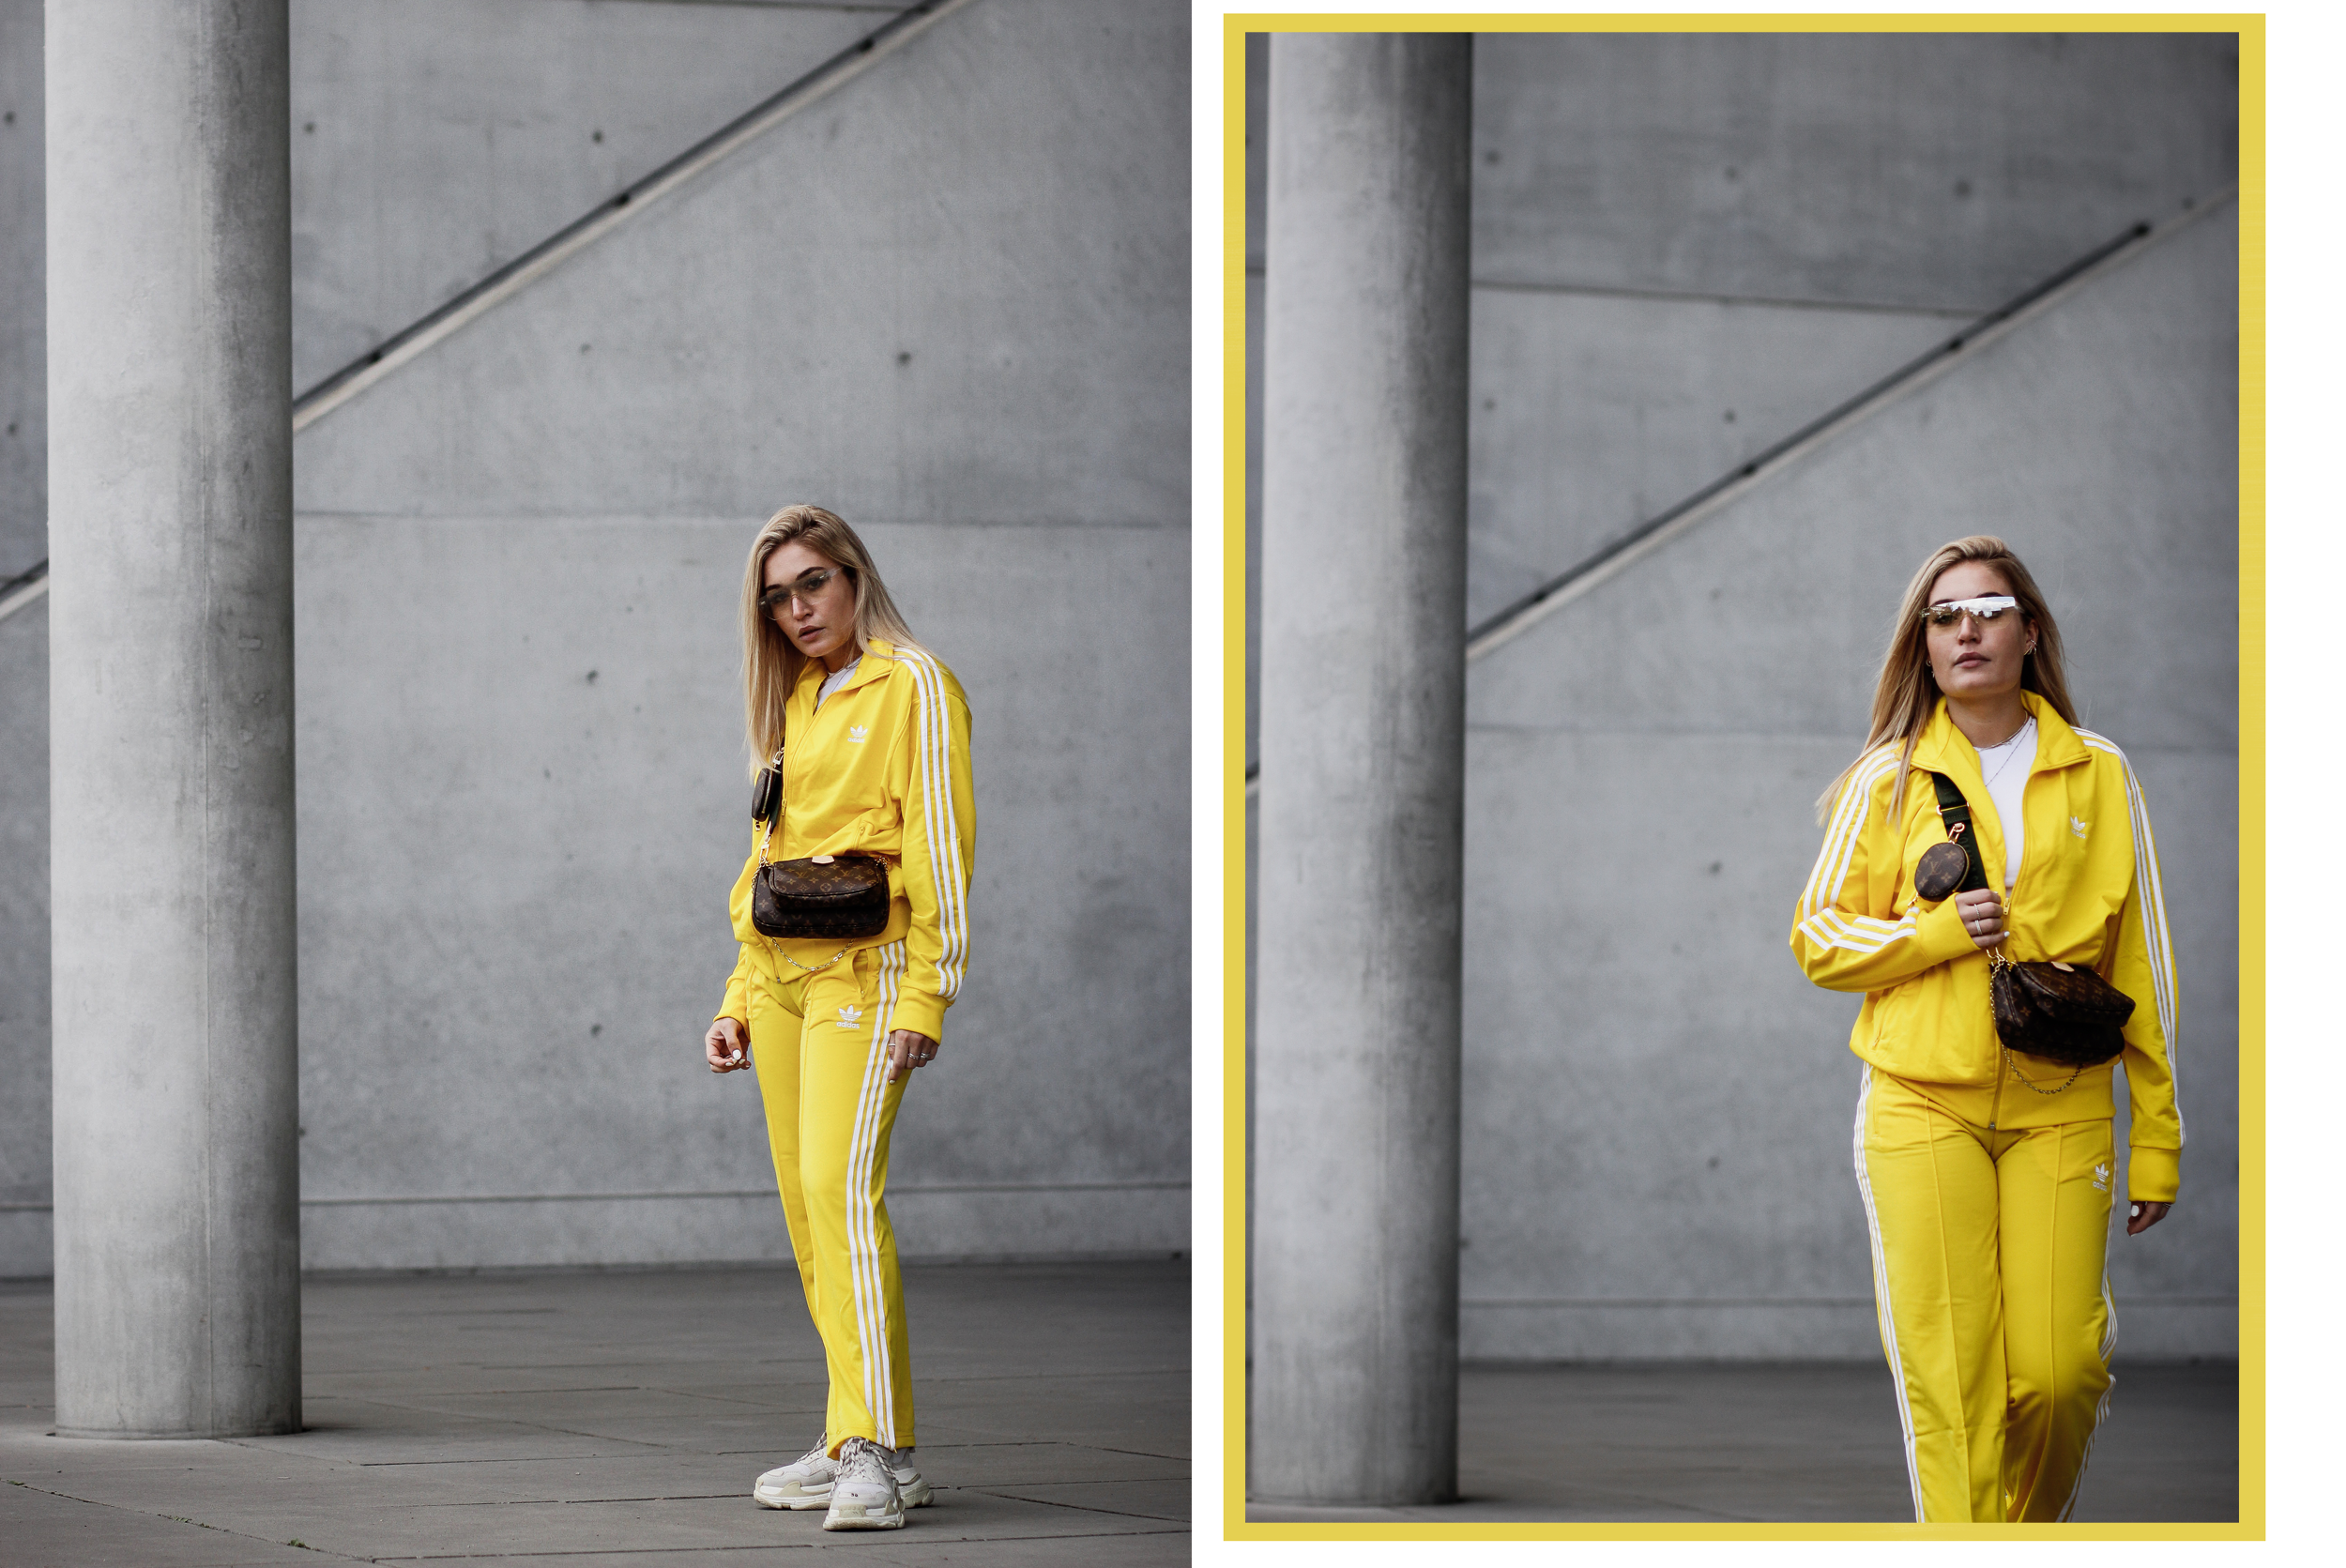 Lauralamode Adidas Outfit Tracksuit Streetstyle Look Outfitoftheday Louis Vuitton Louis Vuitton Multipochette Balenciaga Triple S Munich Berlin Blogger Fashionblogger